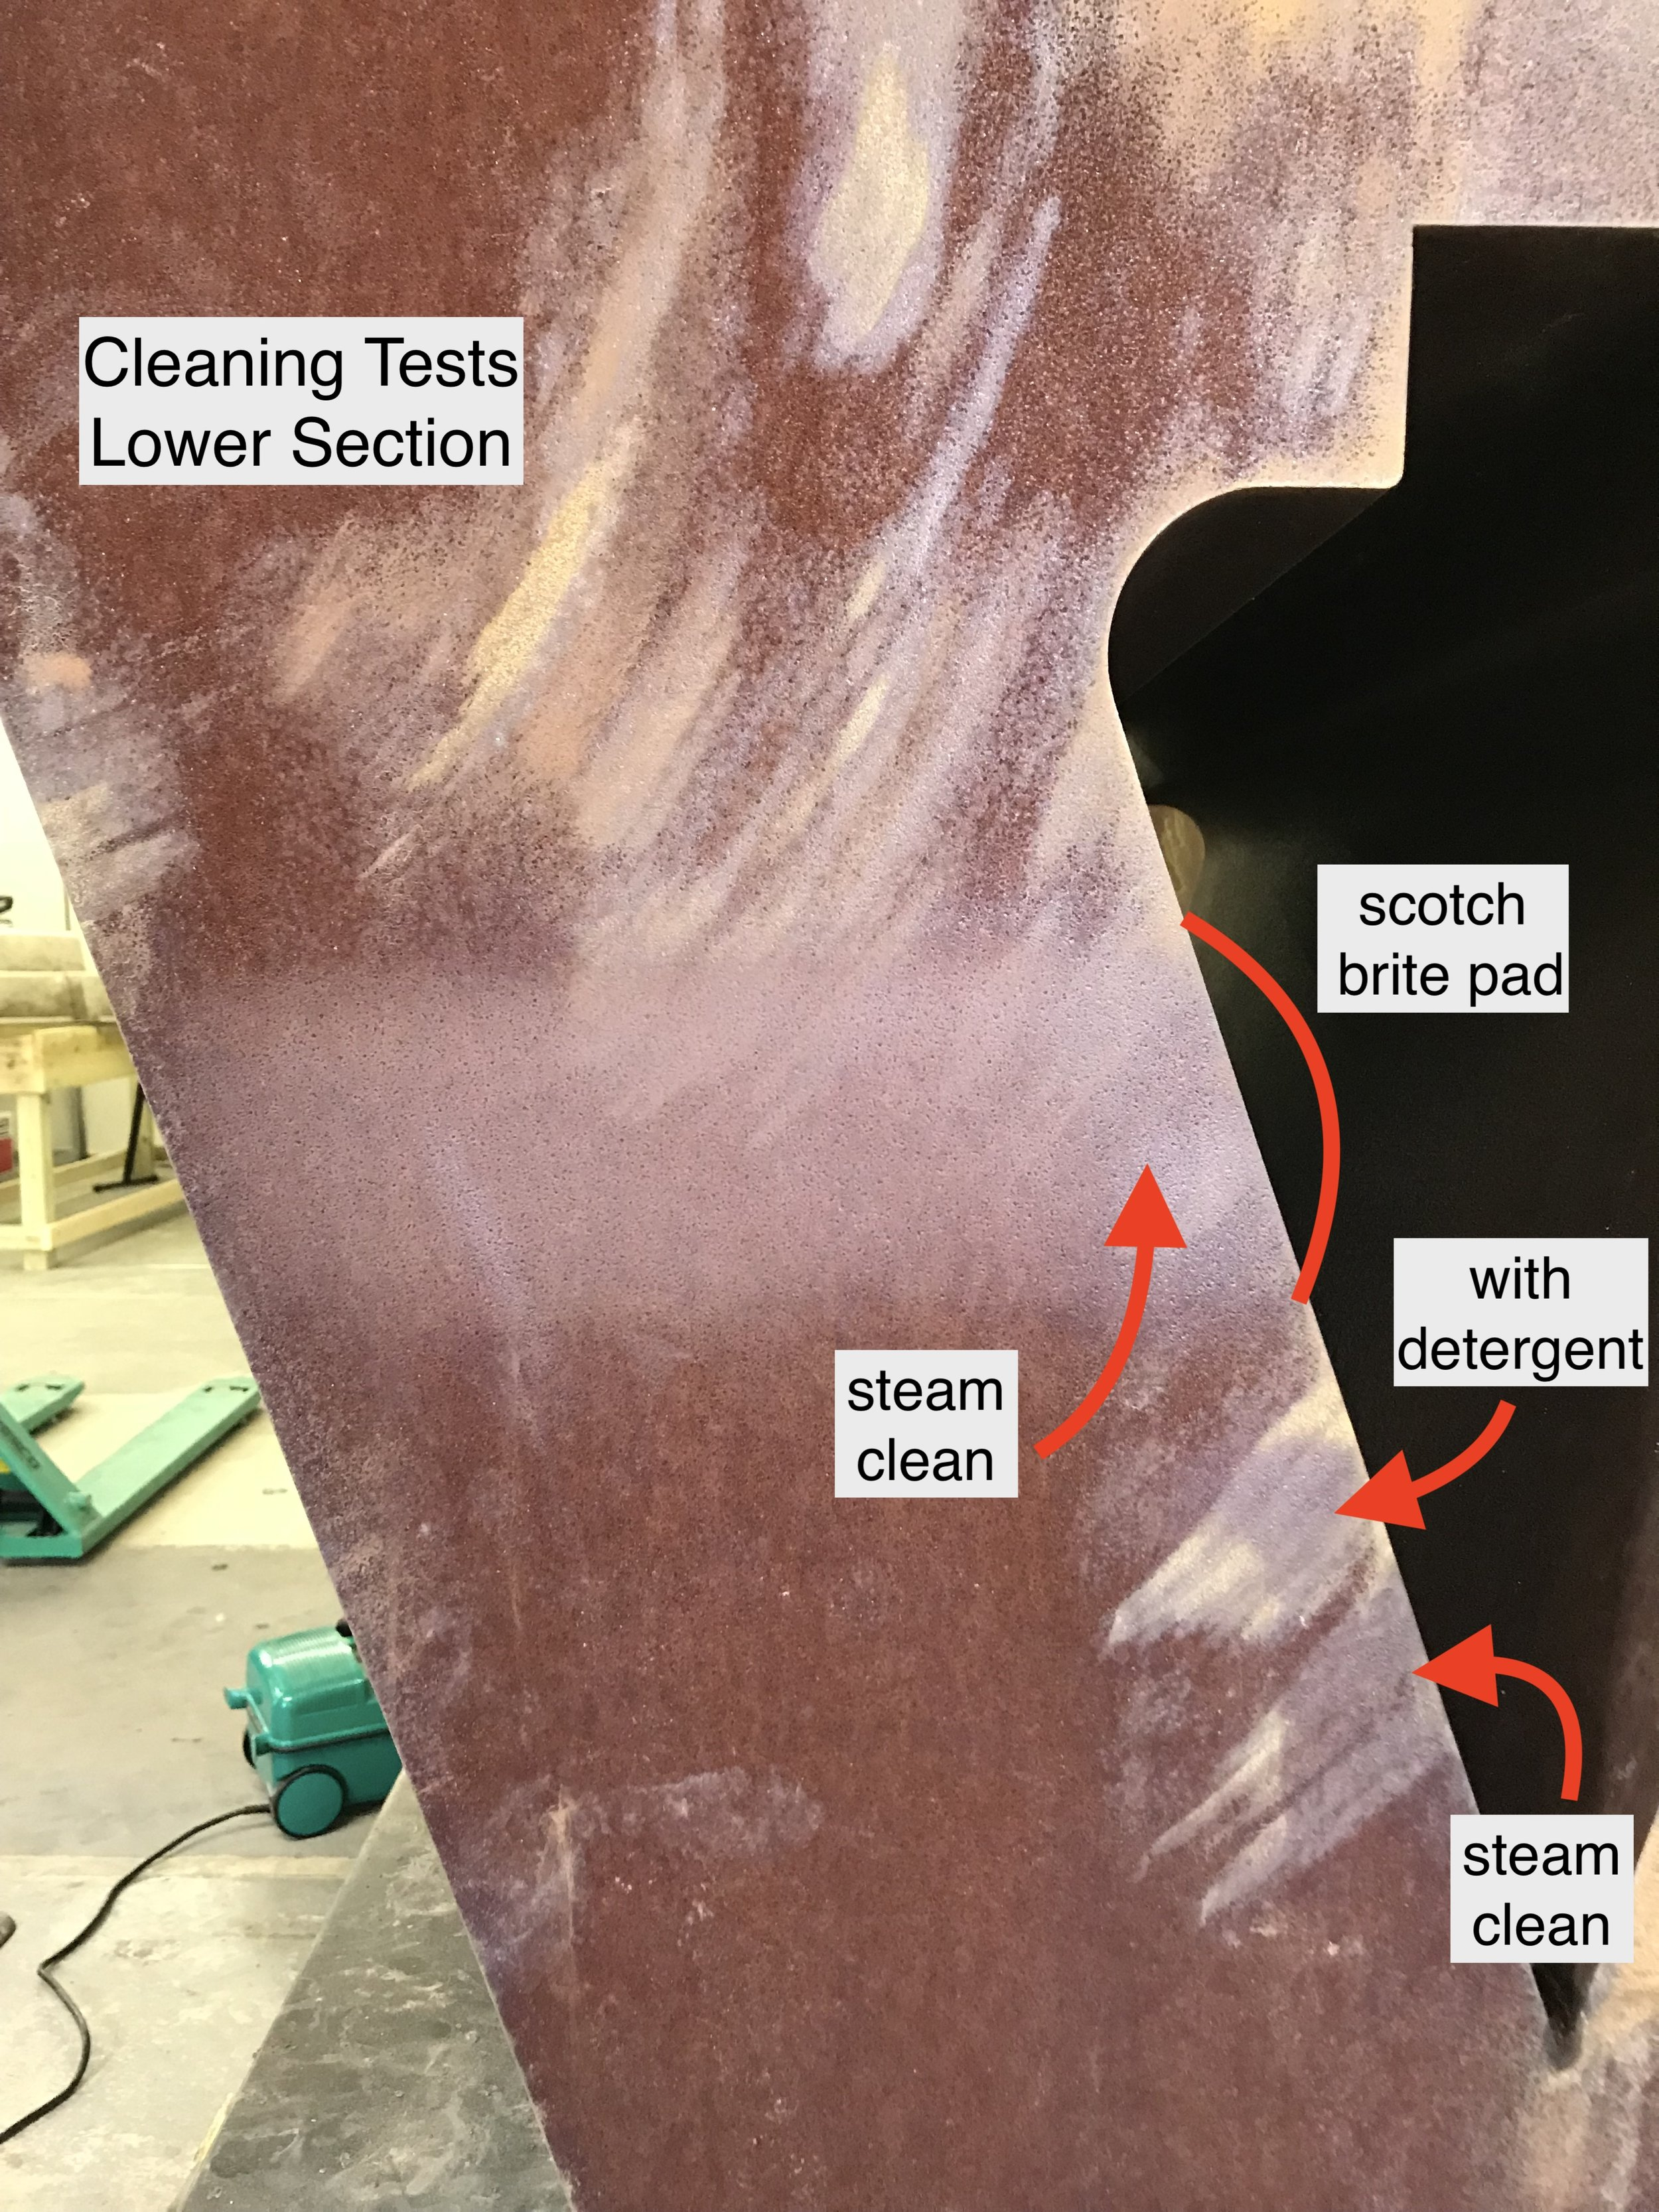 Lower section cleaning tests